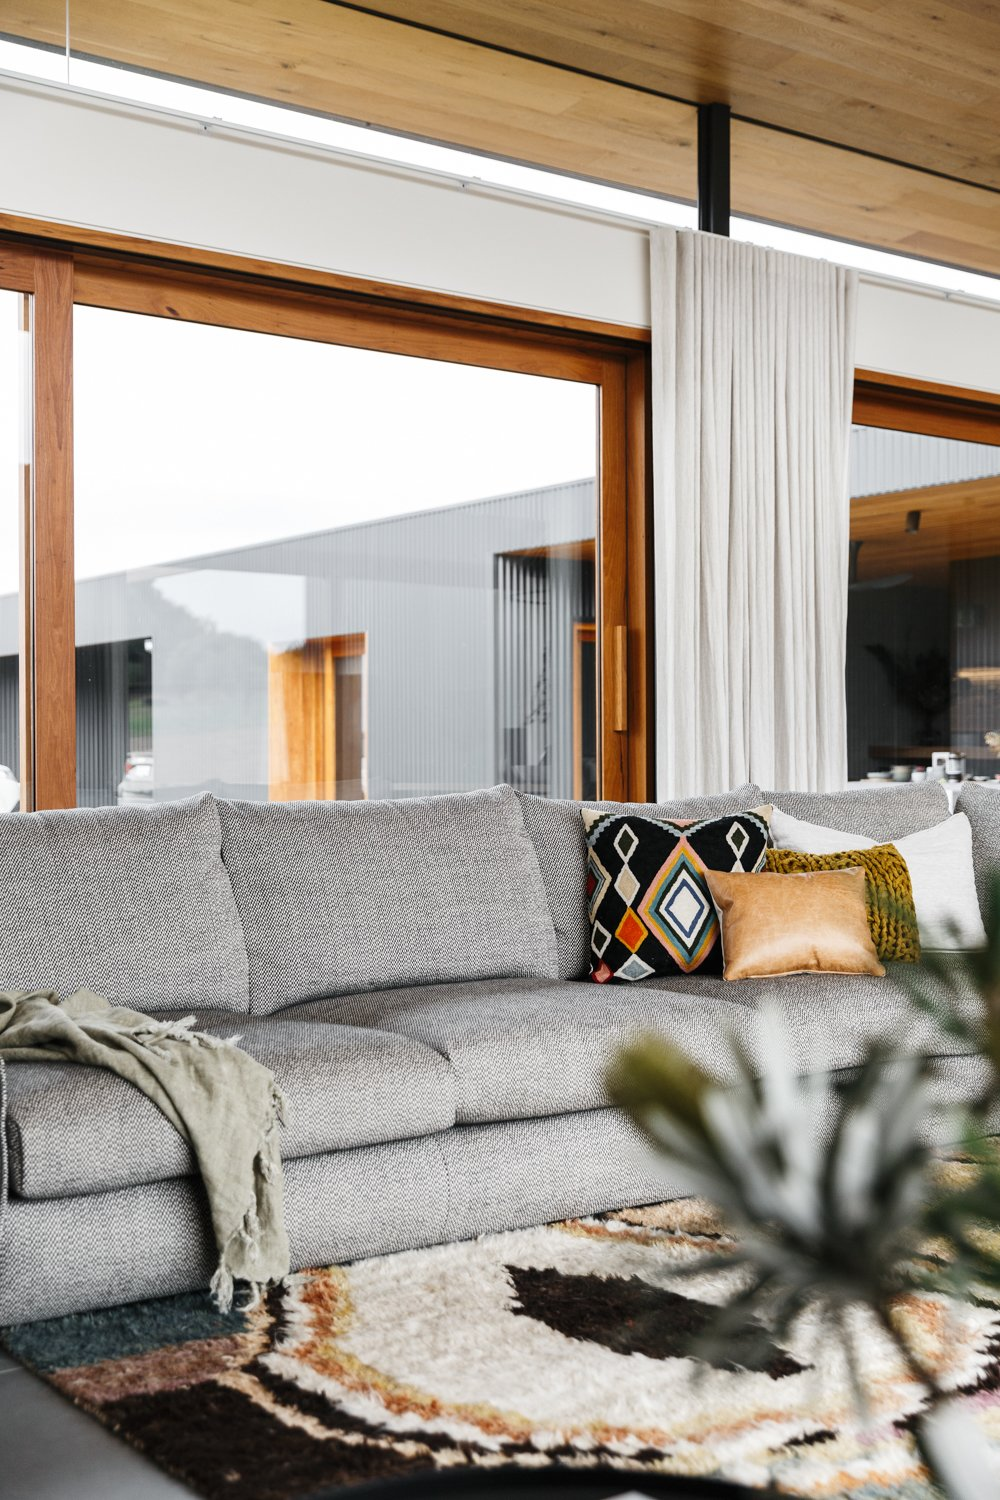 Living Room and Sofa  Photo 3 of 11 in The Surrounding Countryside Inspires a Family Home in Australia's Adelaide Hills